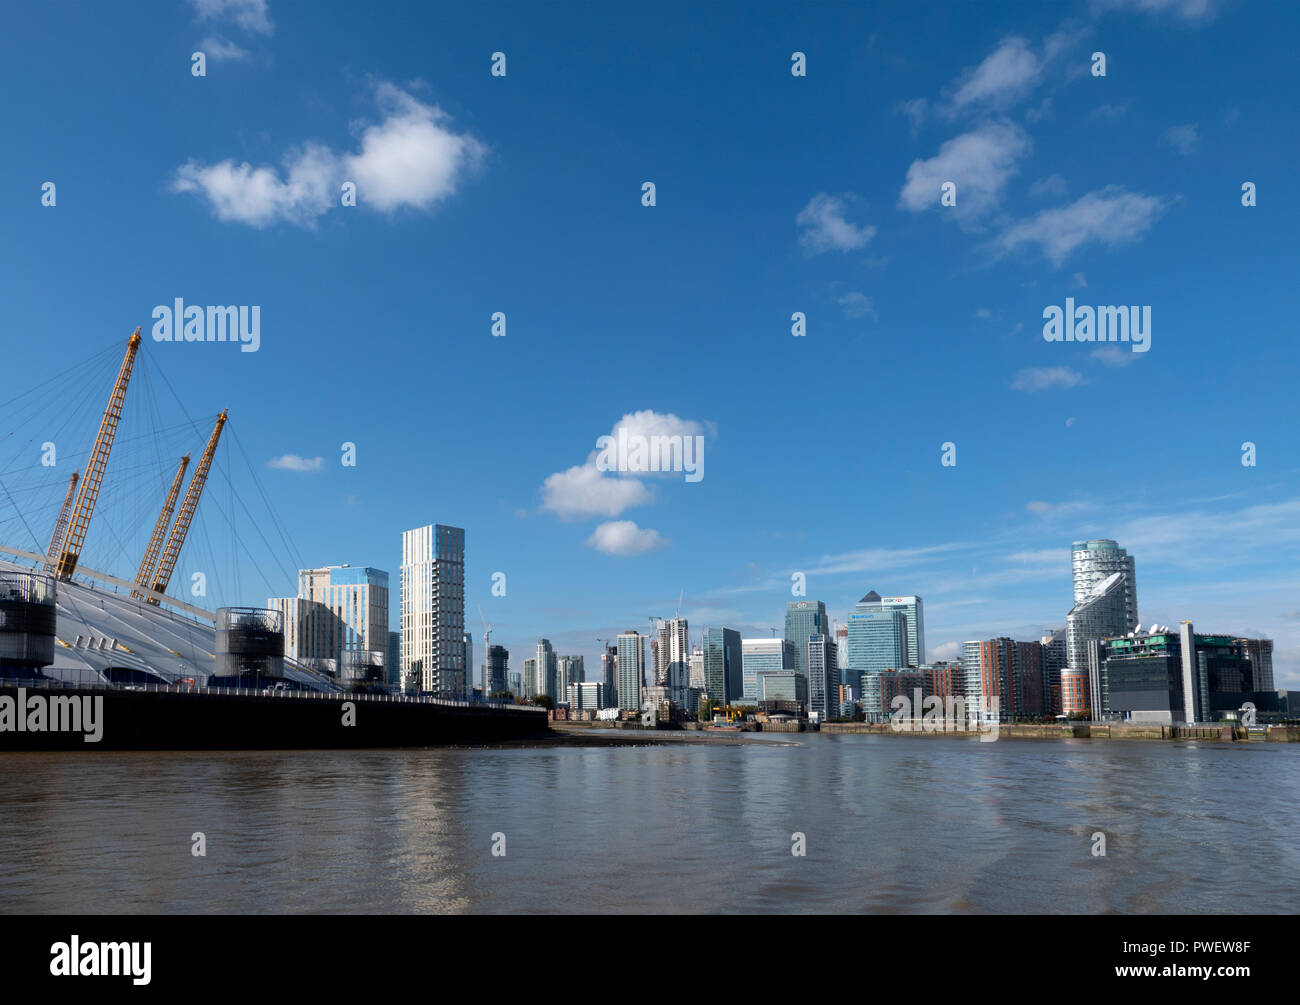 London O2 Arena / Millennium Dome at Greenwich Docklands and the skyline of Canary Wharf. - Stock Image